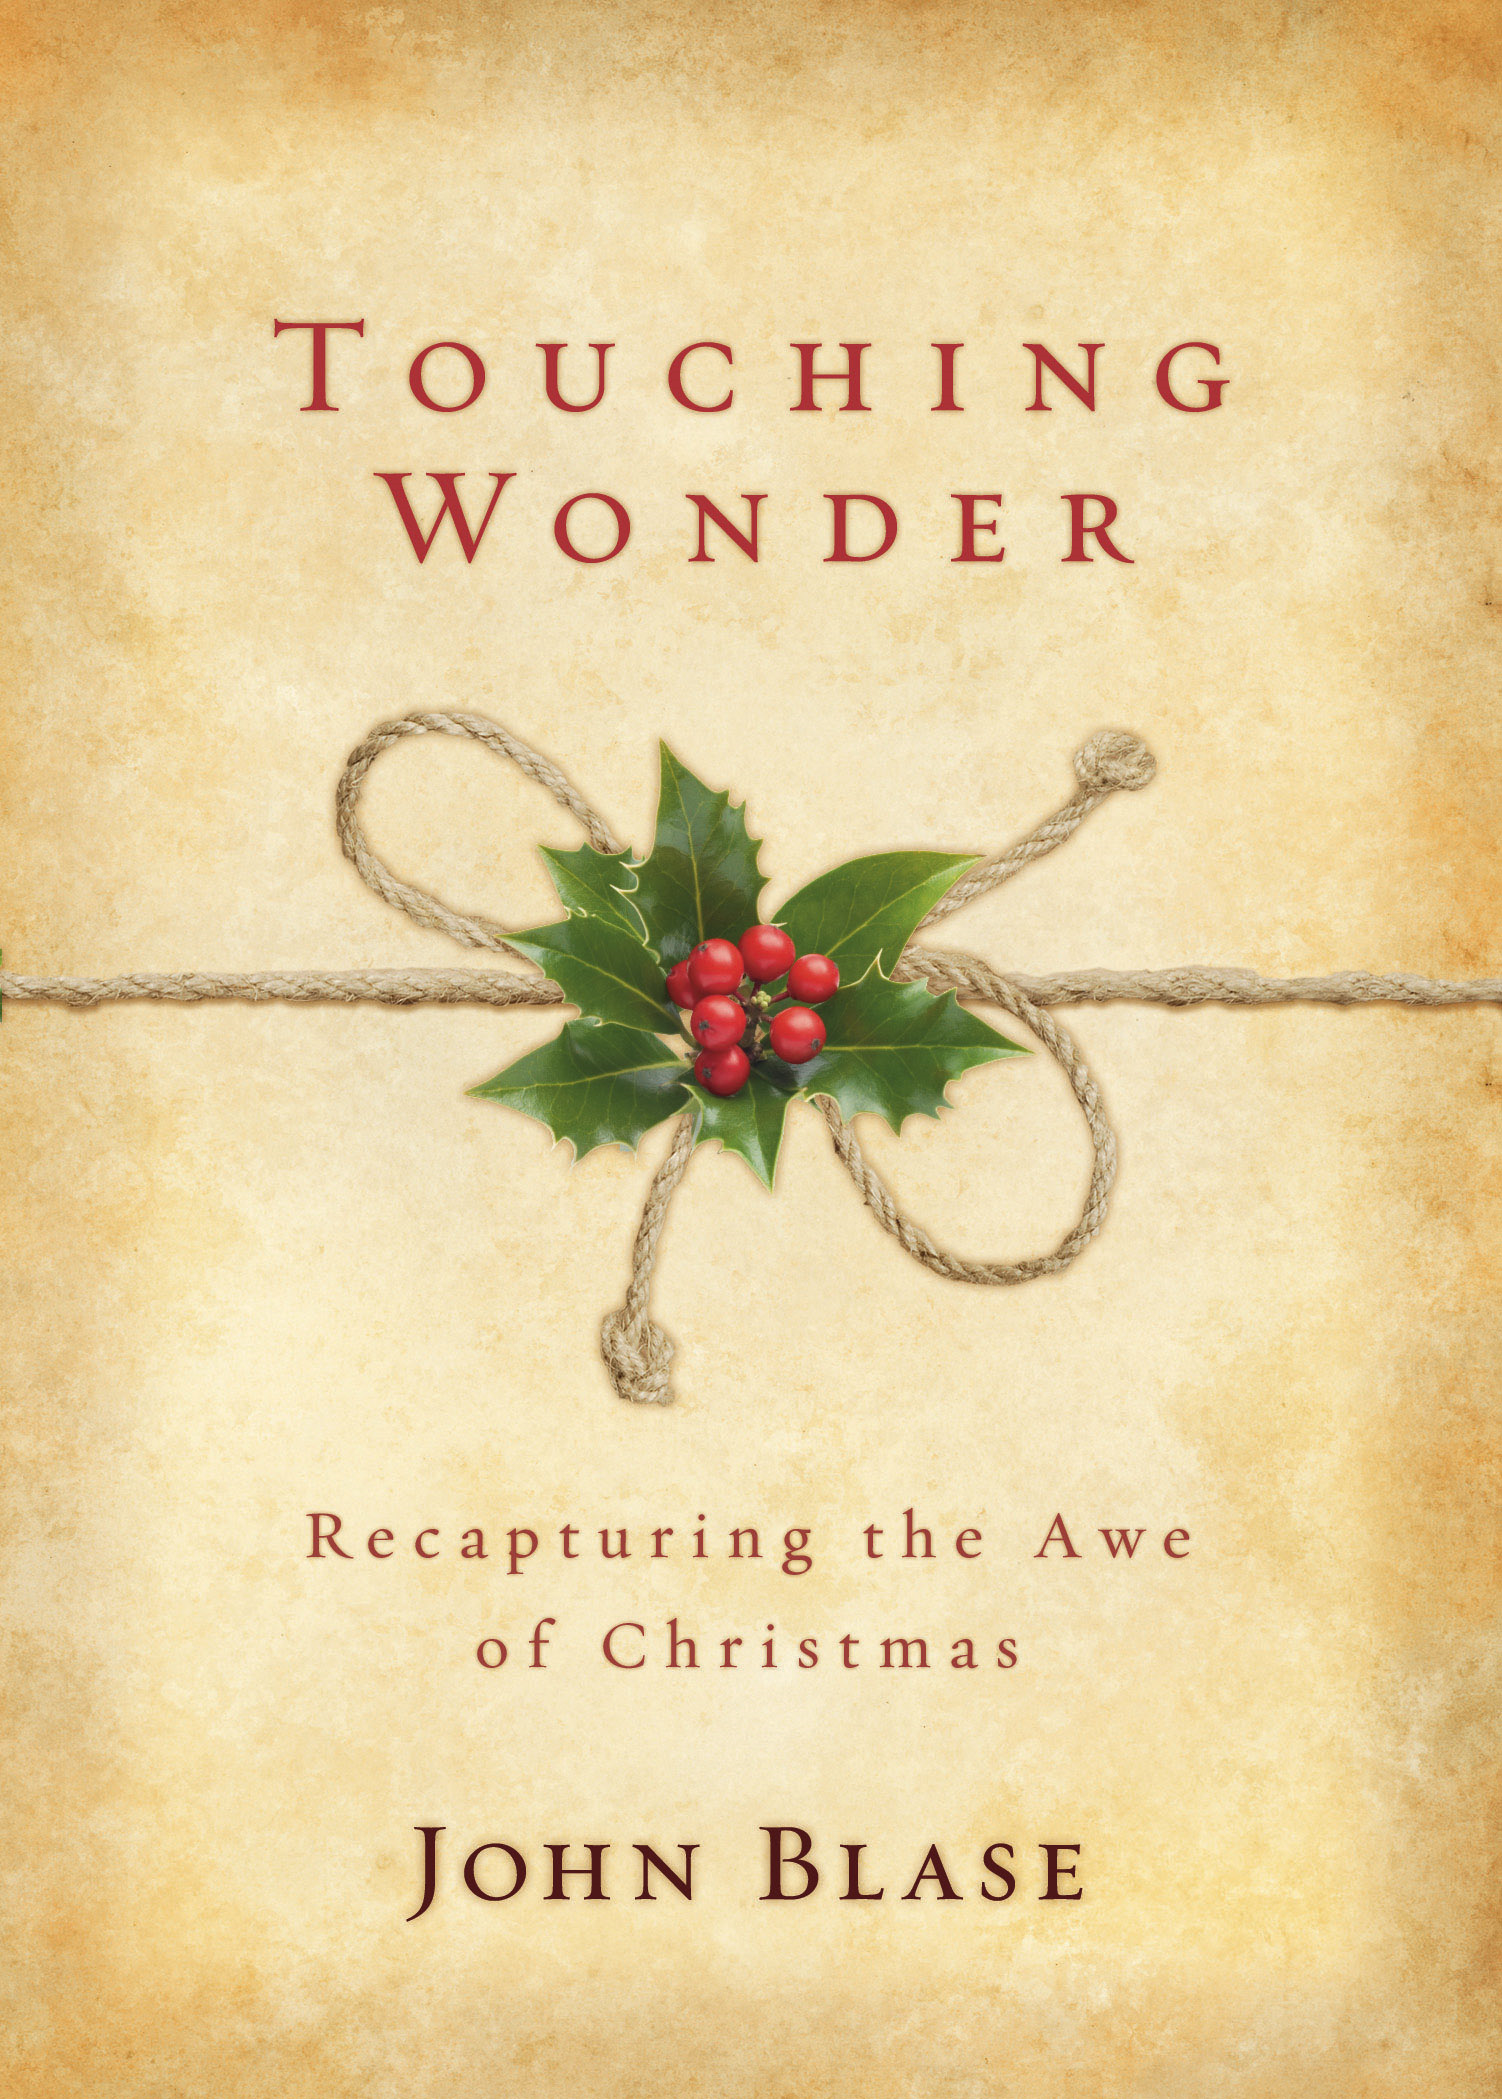 Touching Wonder: Recapturing the Awe of Christmas By: John Blase